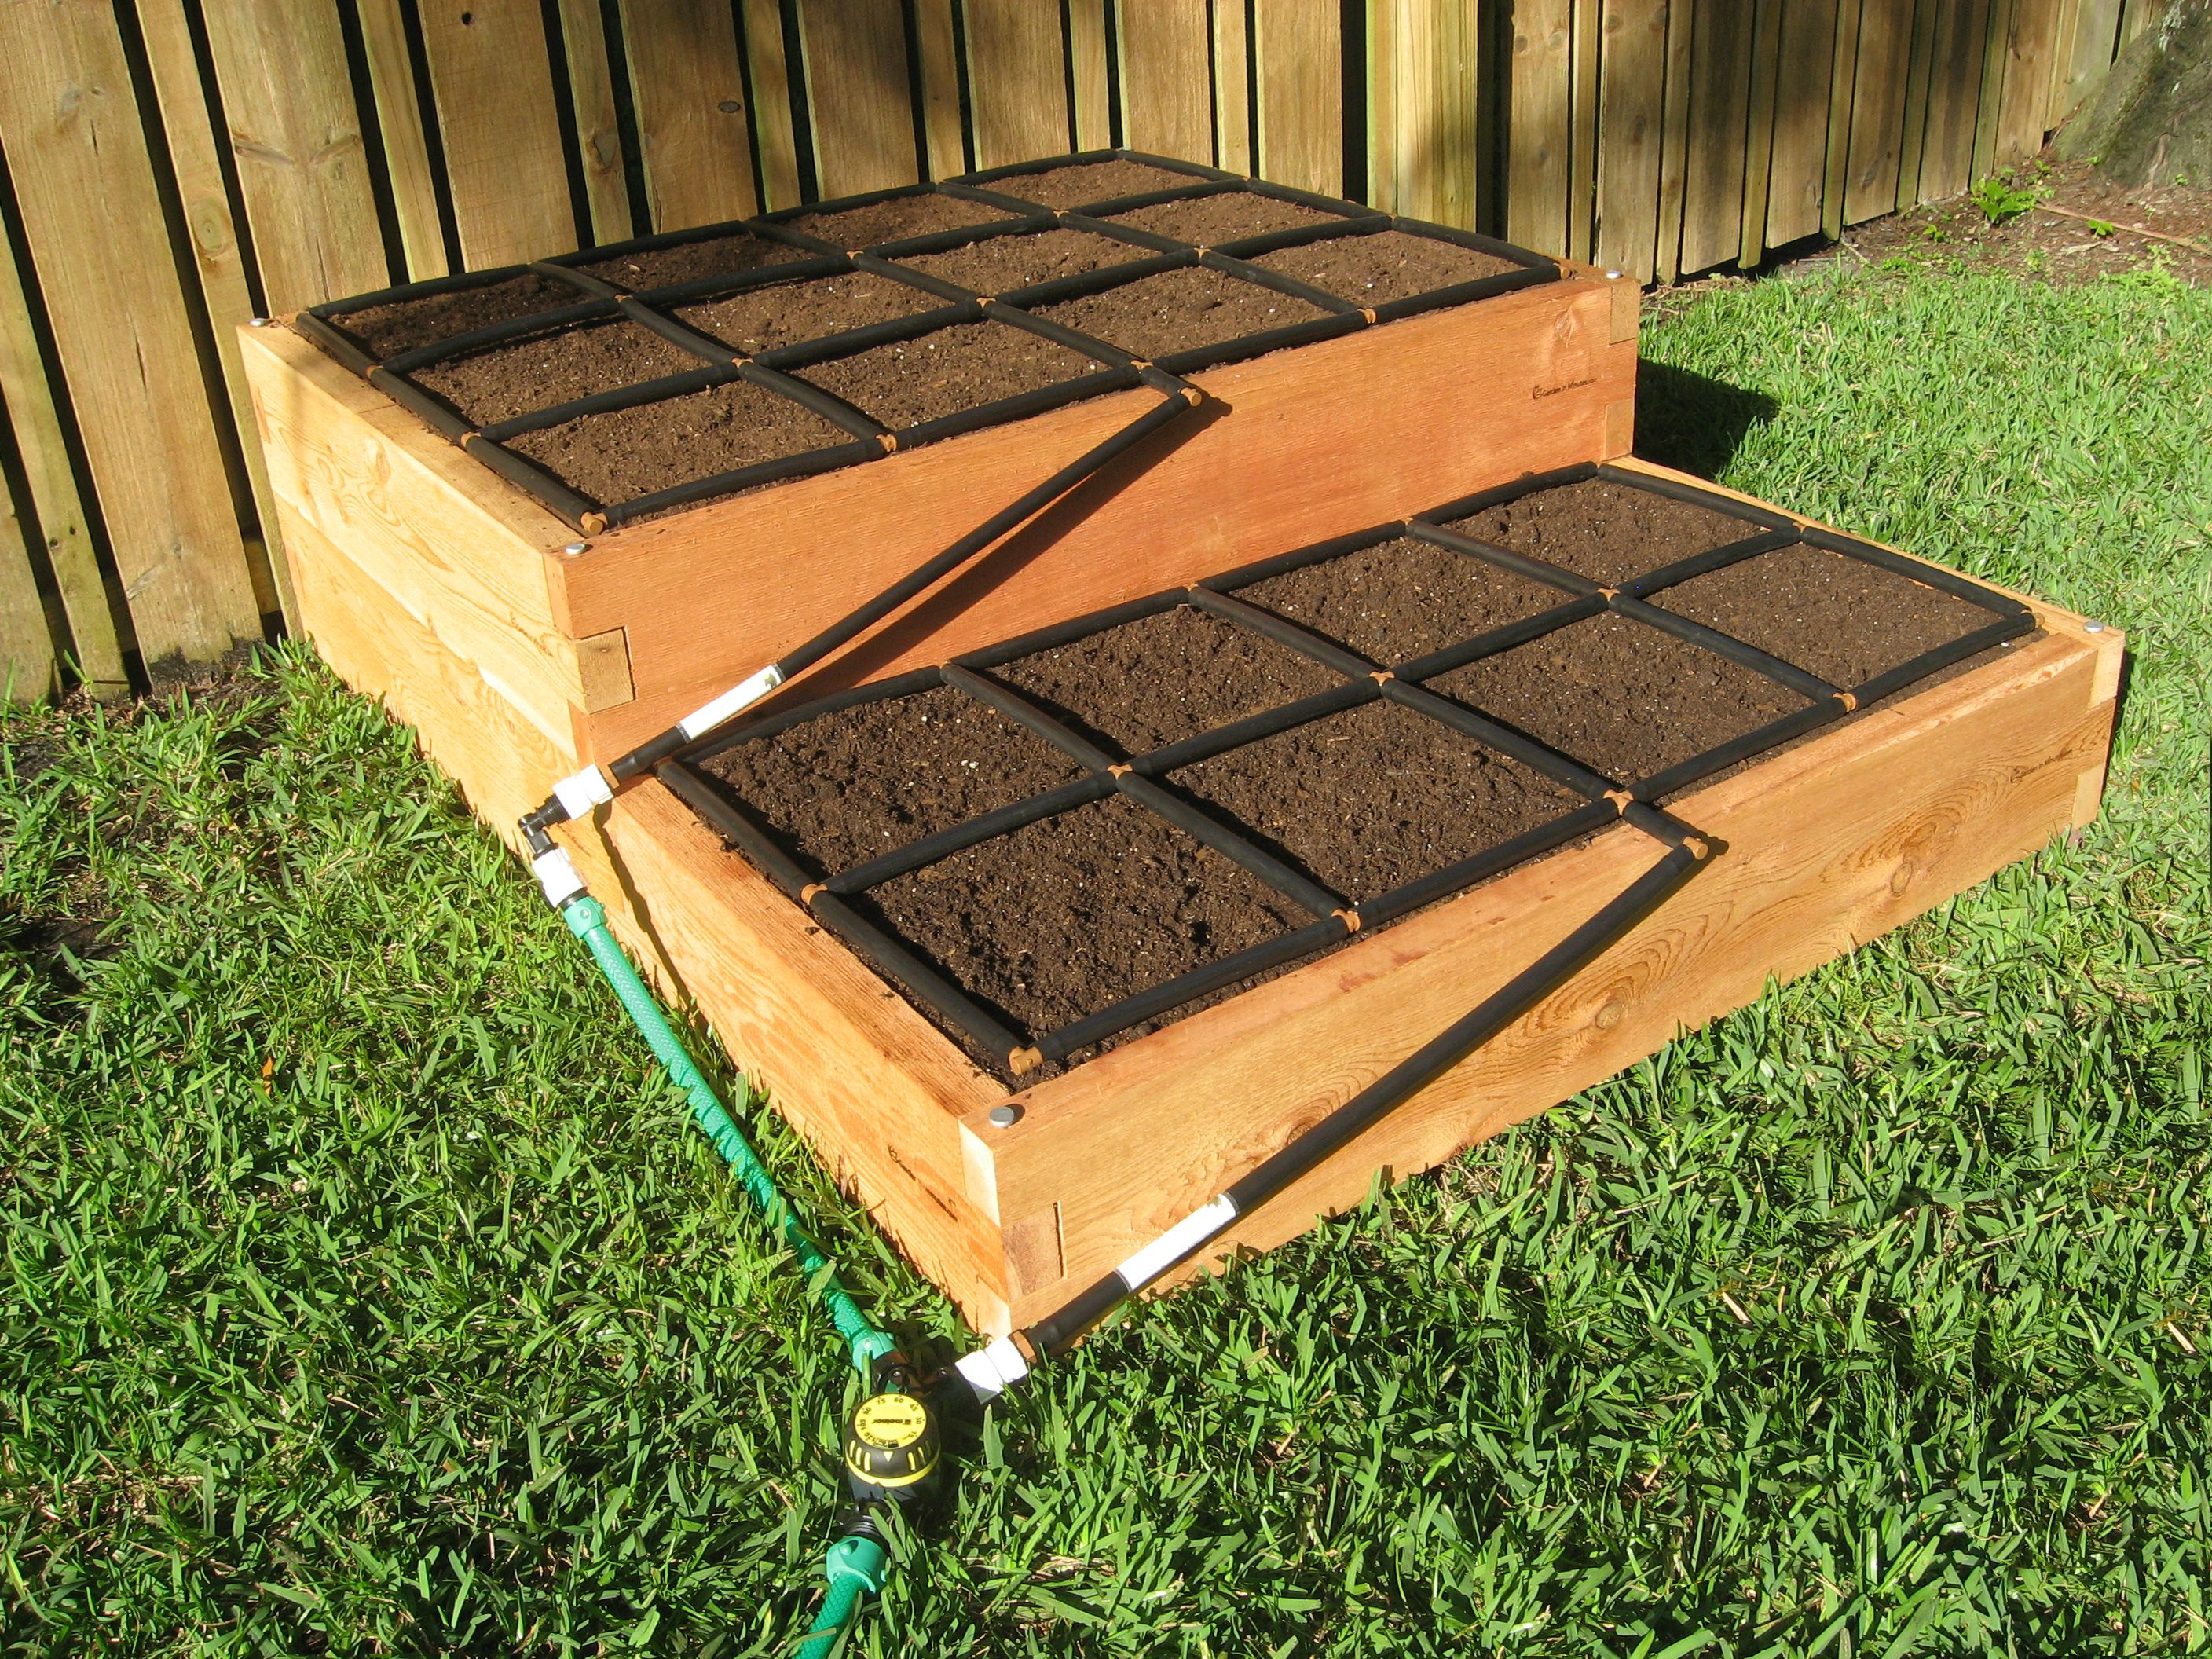 Tiered Raised Garden Kit 4x5 Raised garden beds, Cedar